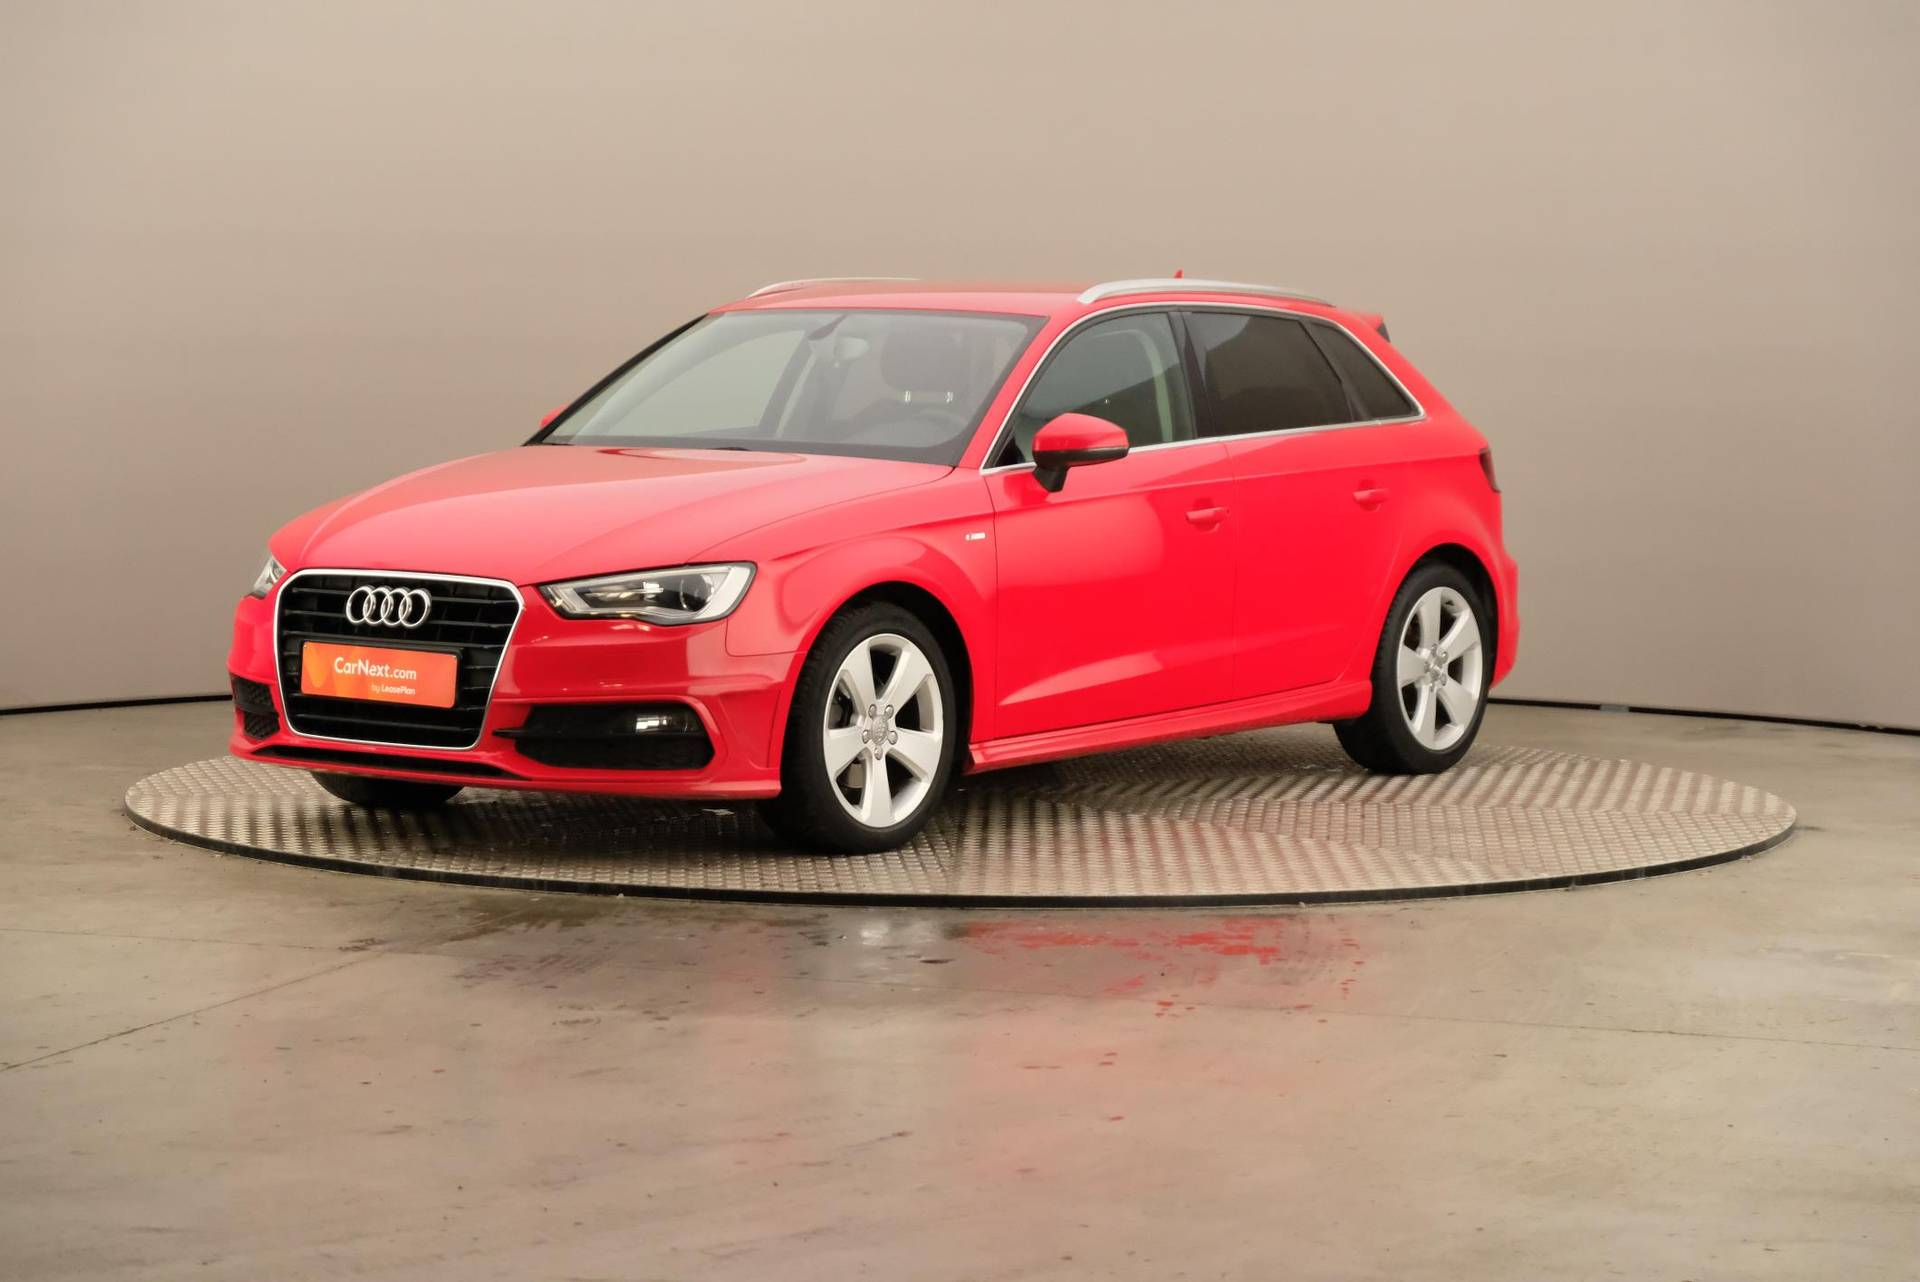 Audi A3 1.6 TDi Ambition PACK SPORT DESIGN XENON GPS PDC CRUISE CONTROL, 360-image35